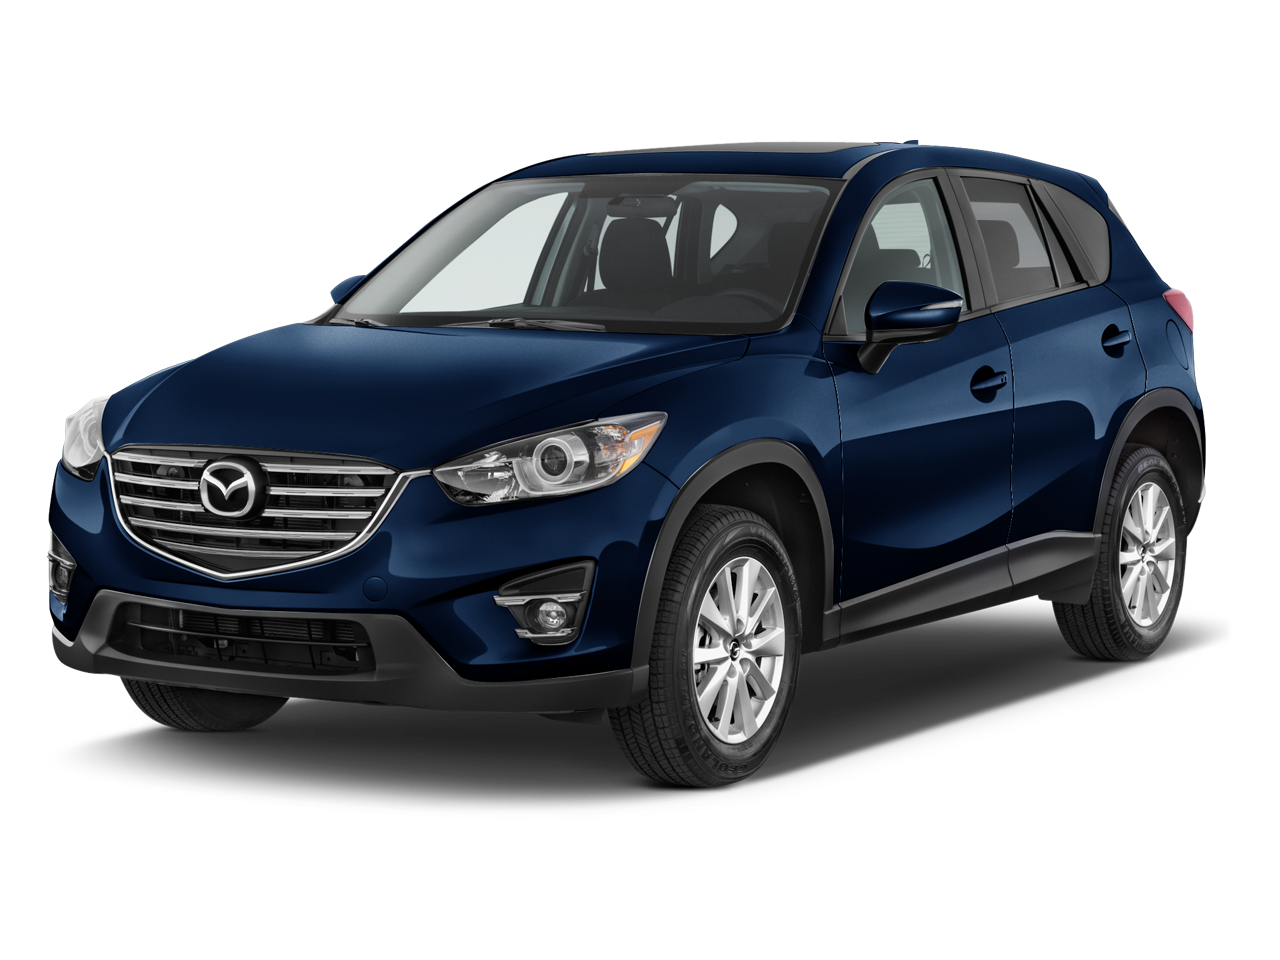 new 2016 mazda cx 5 touring near webster tx mazda of. Black Bedroom Furniture Sets. Home Design Ideas